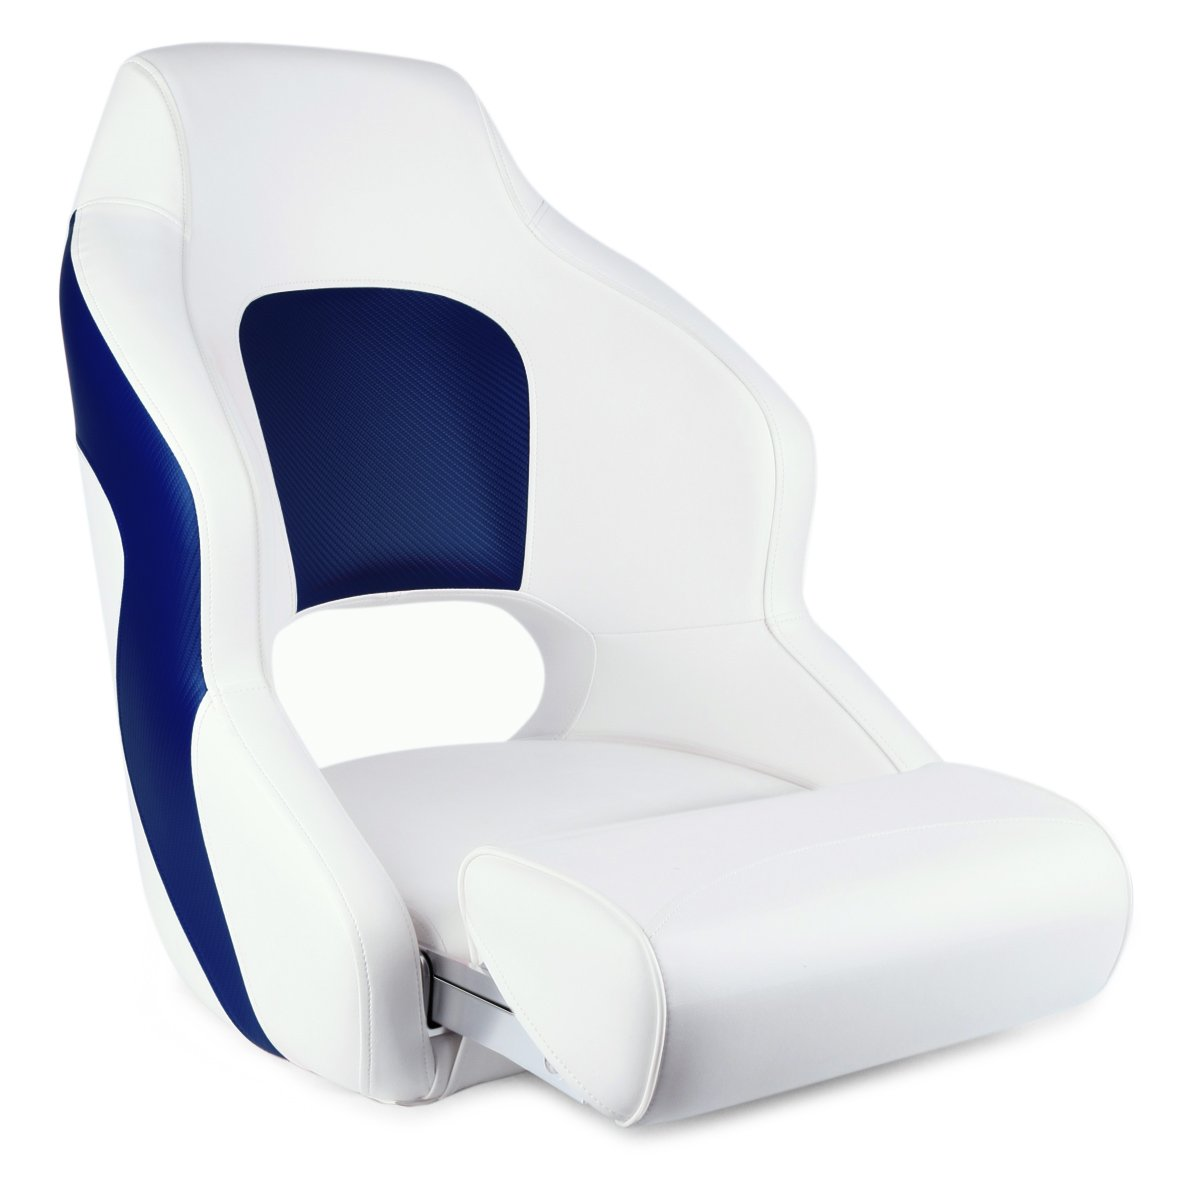 Leader Accessories Two Tone Captain's Bucket Seat Premium Sports Flip Up Boat Seat (White/Blue)